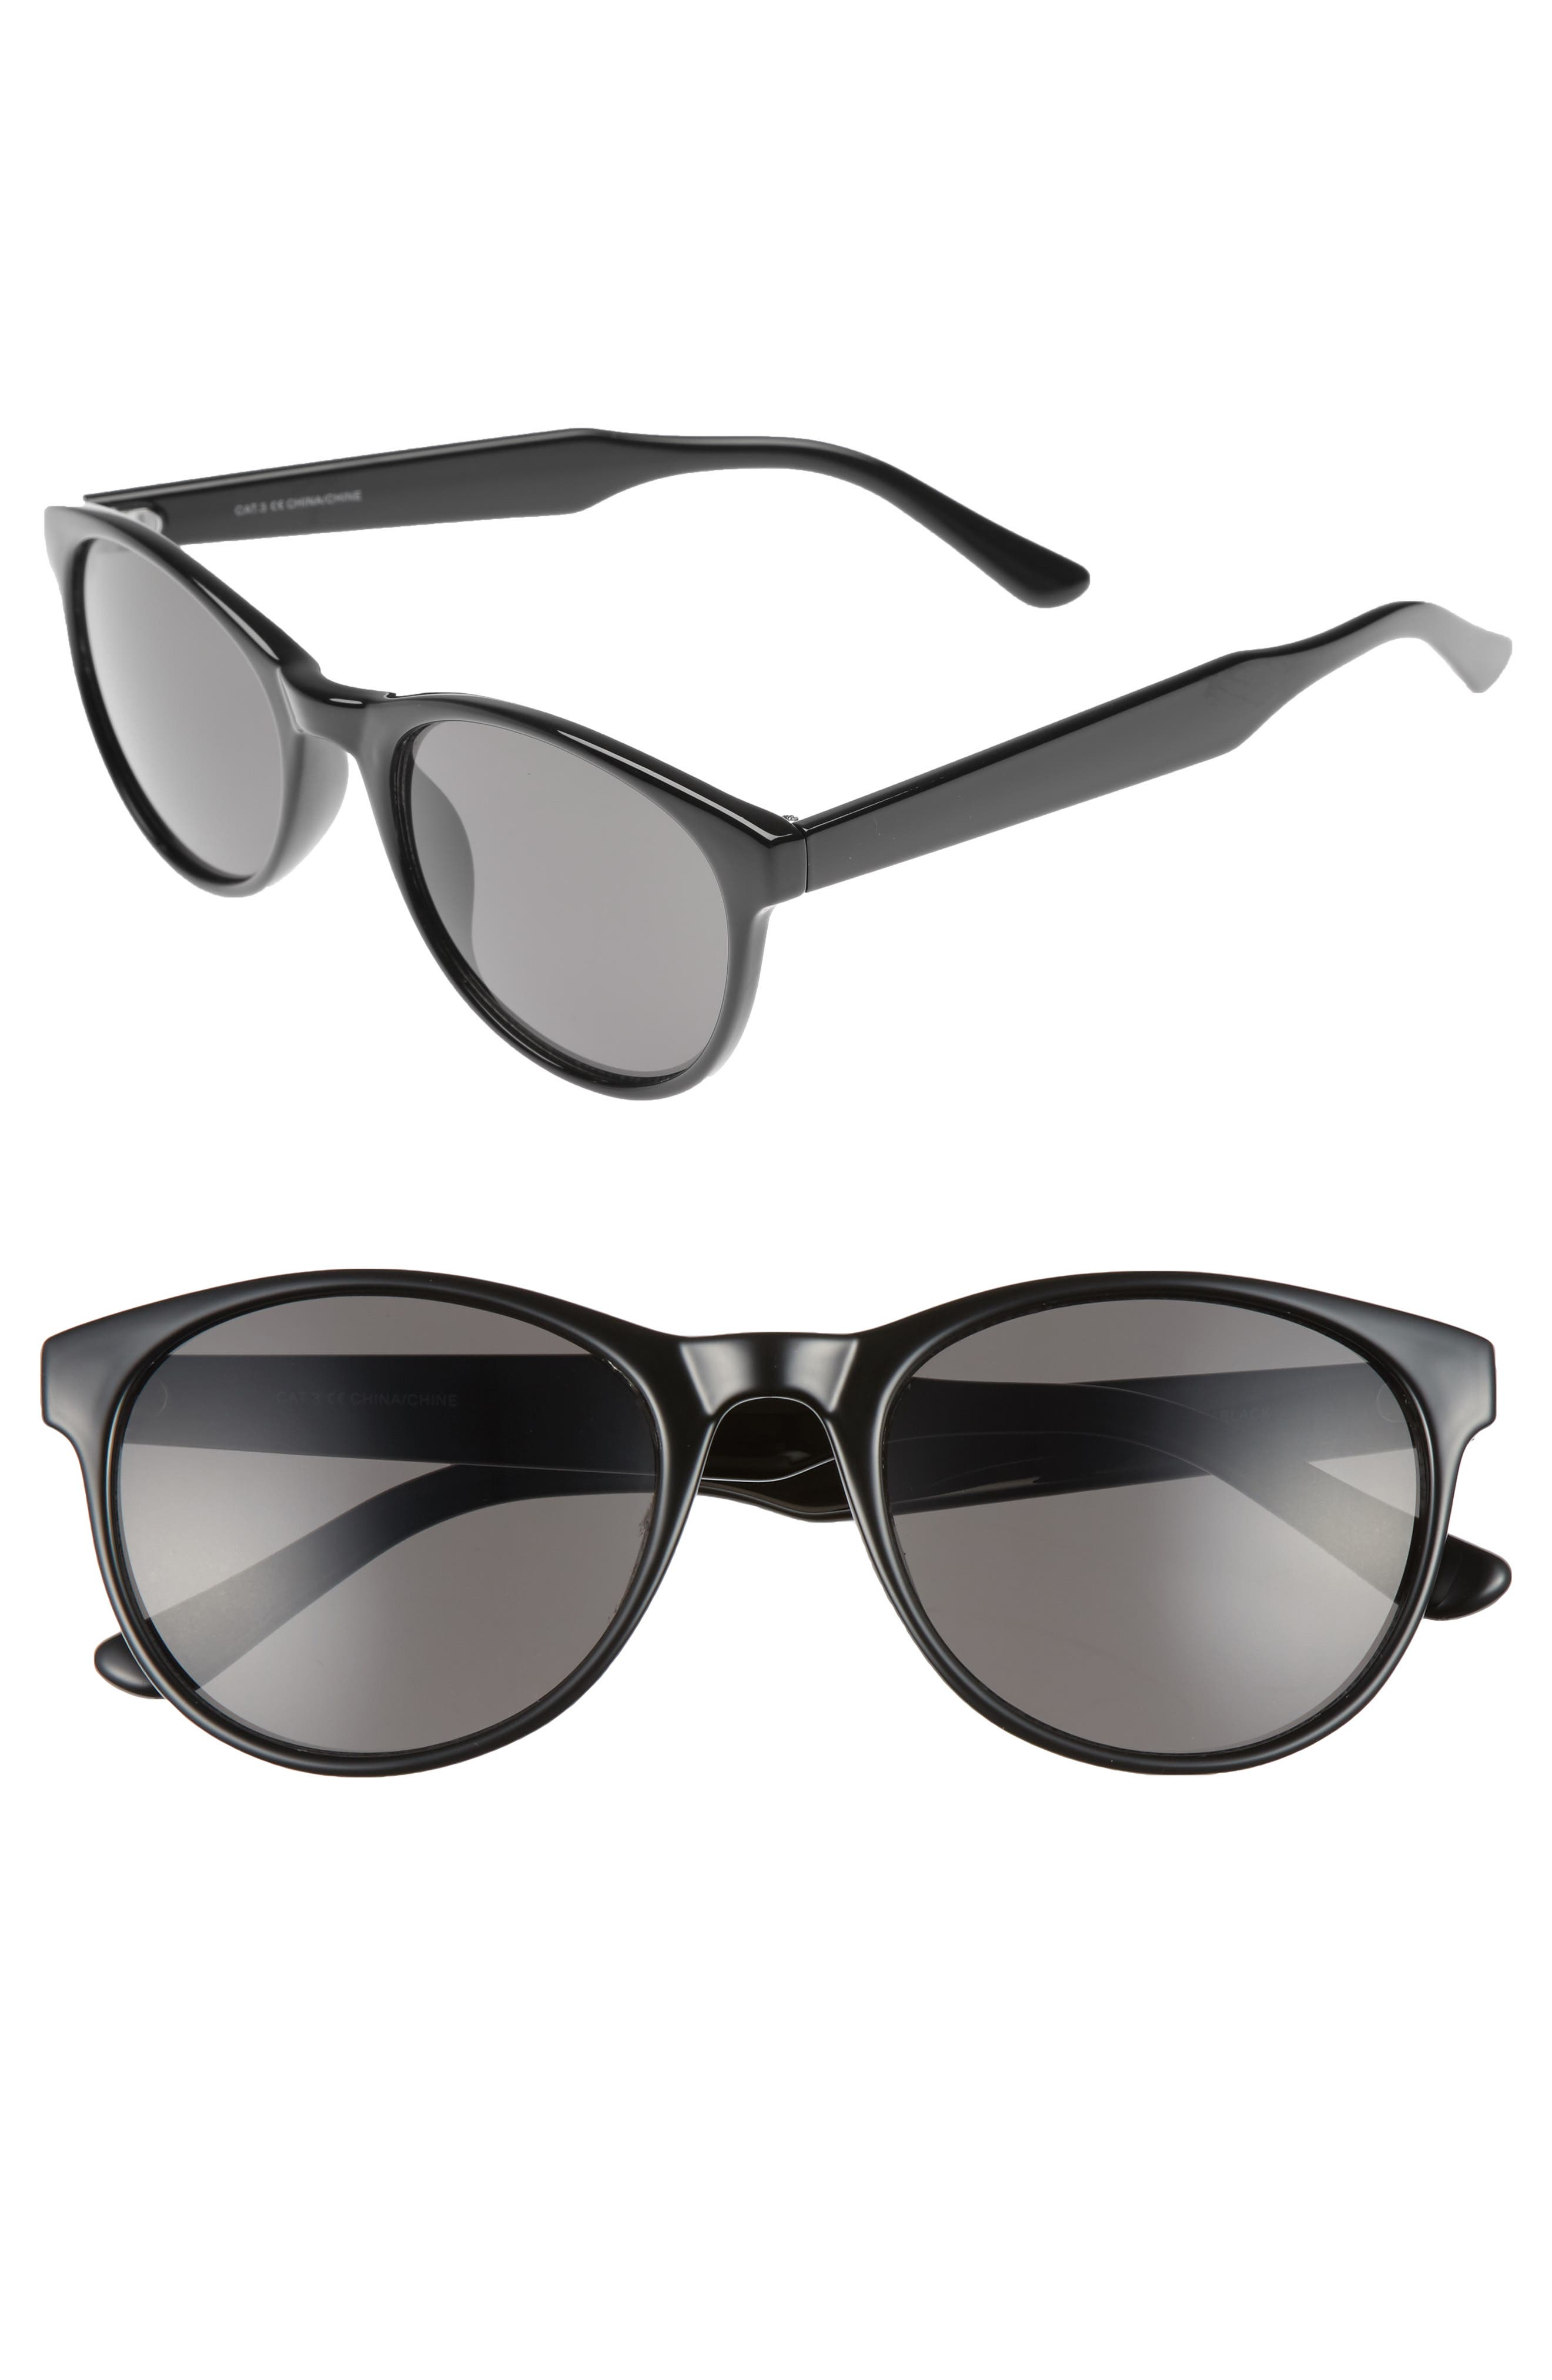 Victor 54mm Sunglasses,                             Main thumbnail 1, color,                             BLACK/ GREY